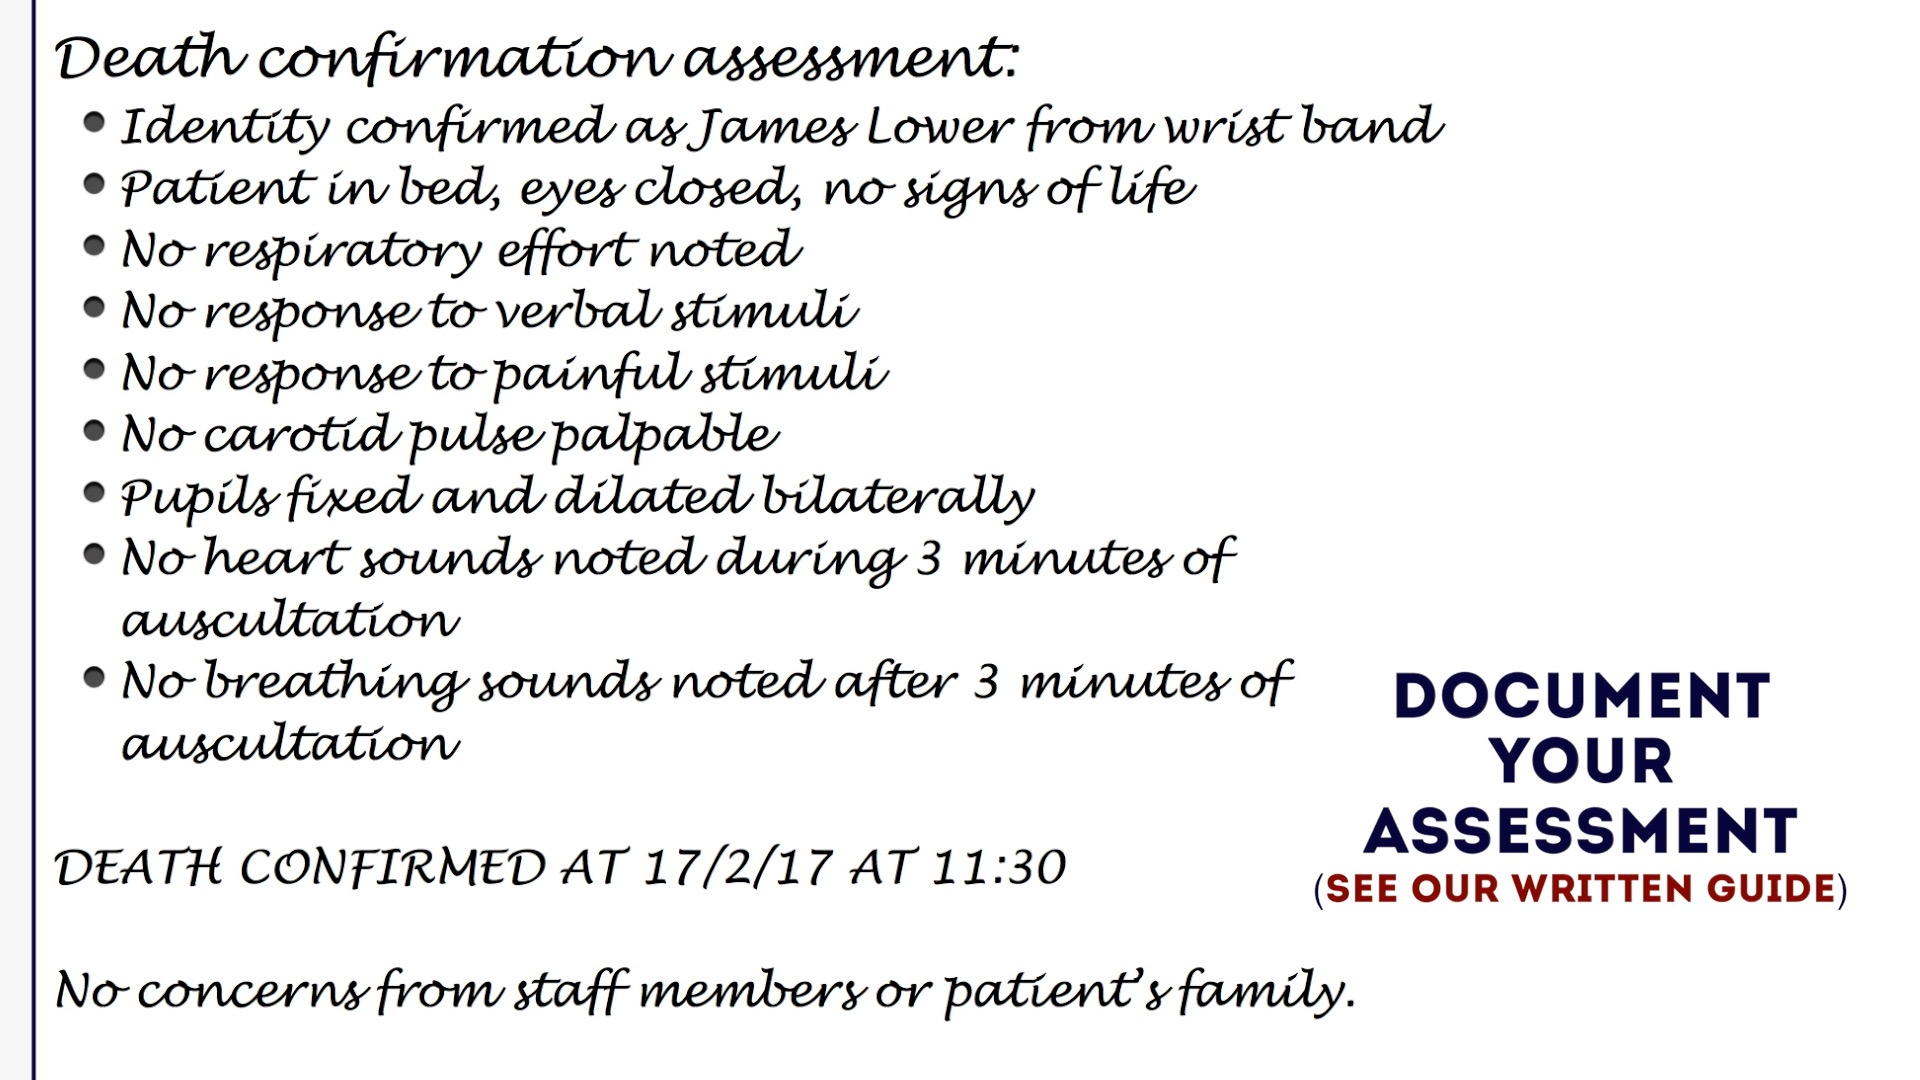 what is the official document that documents your death